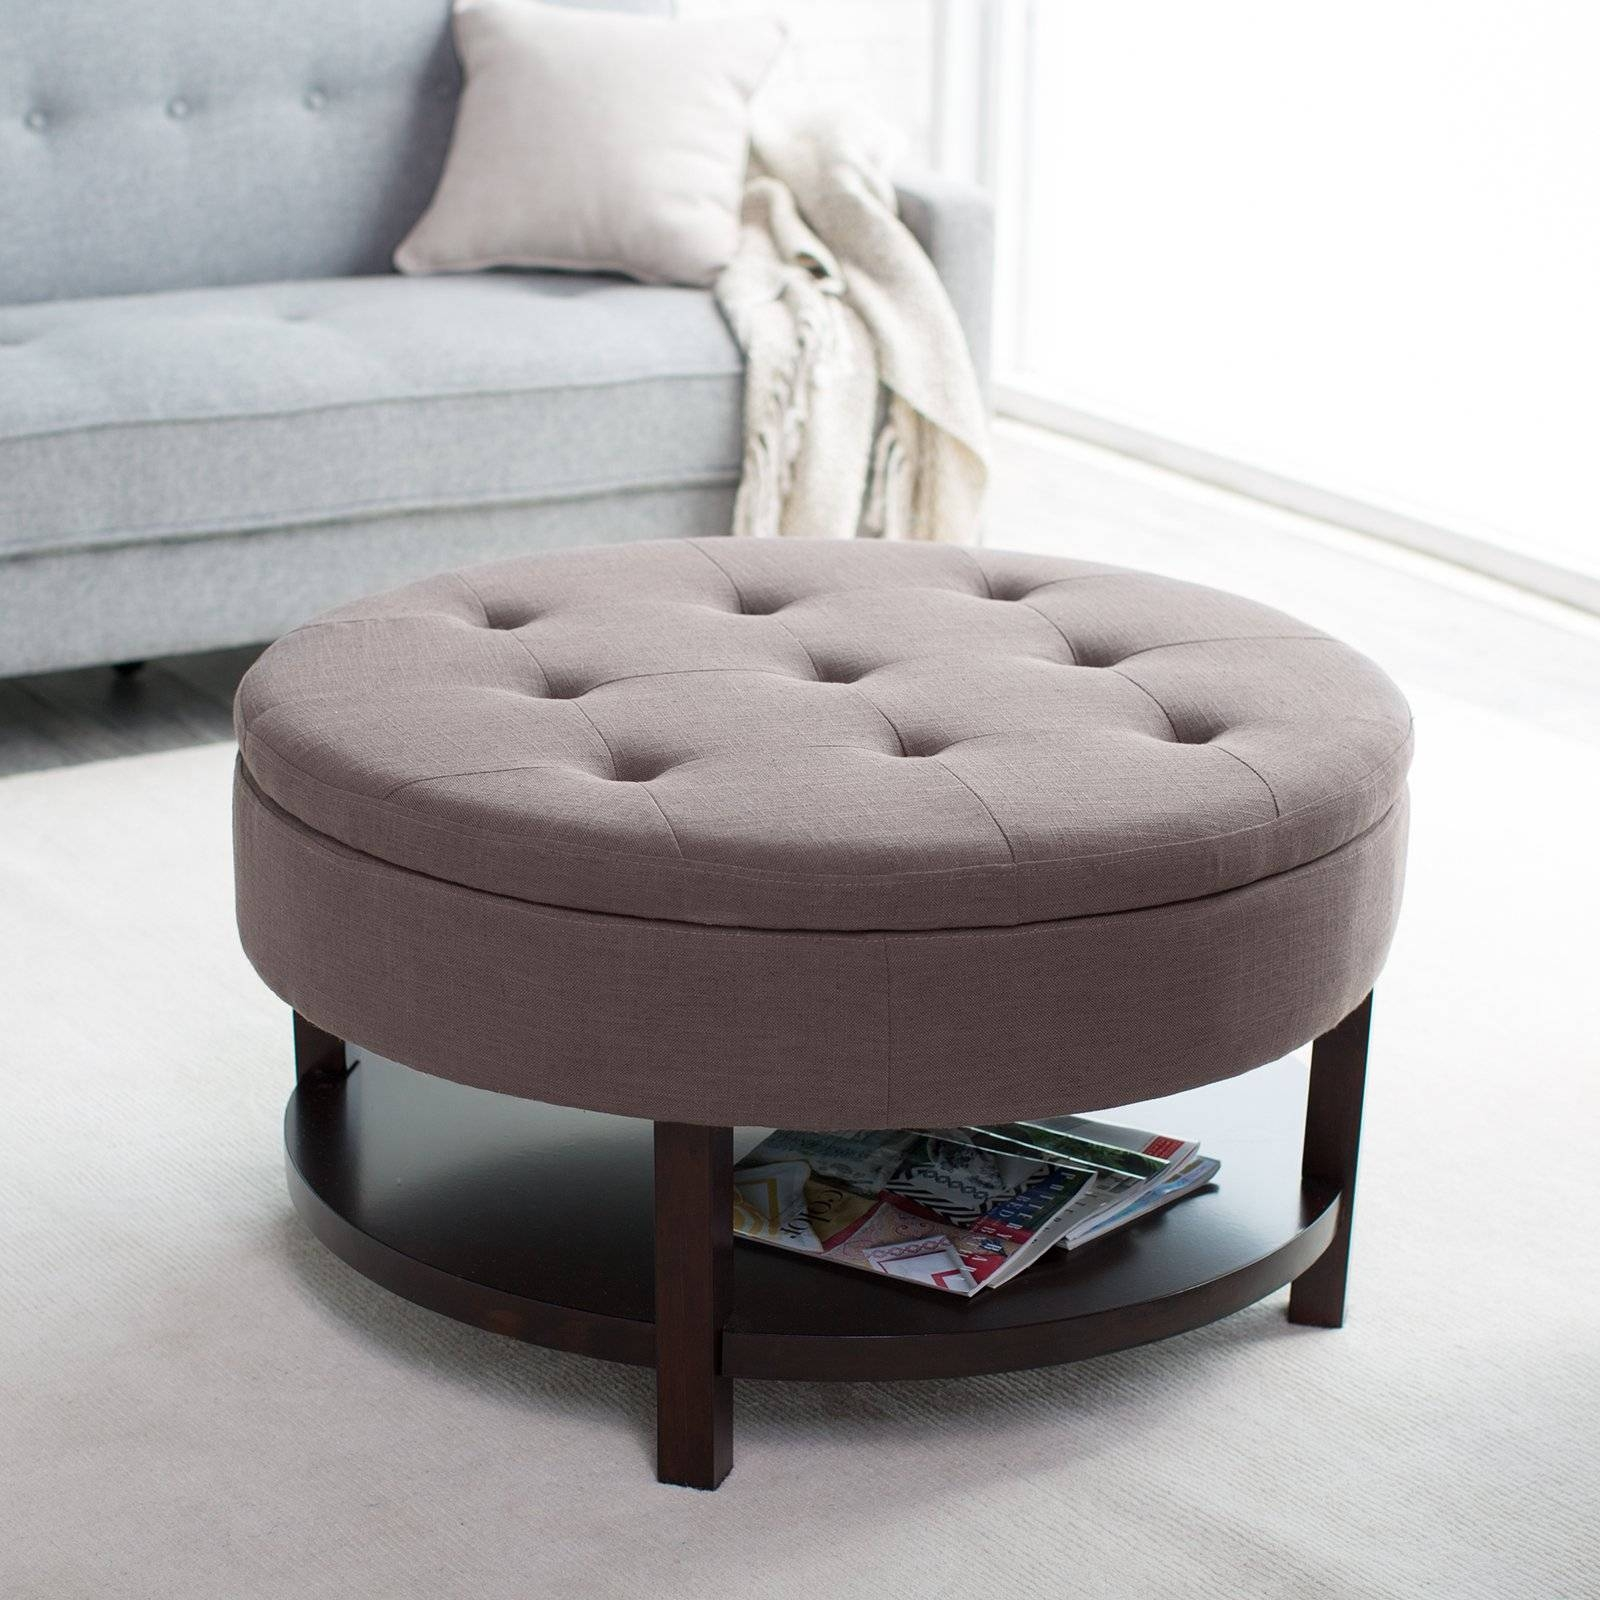 Furniture: Padded Ottoman With Storage | Ottomans For Sale throughout Footstool Coffee Tables (Image 15 of 30)